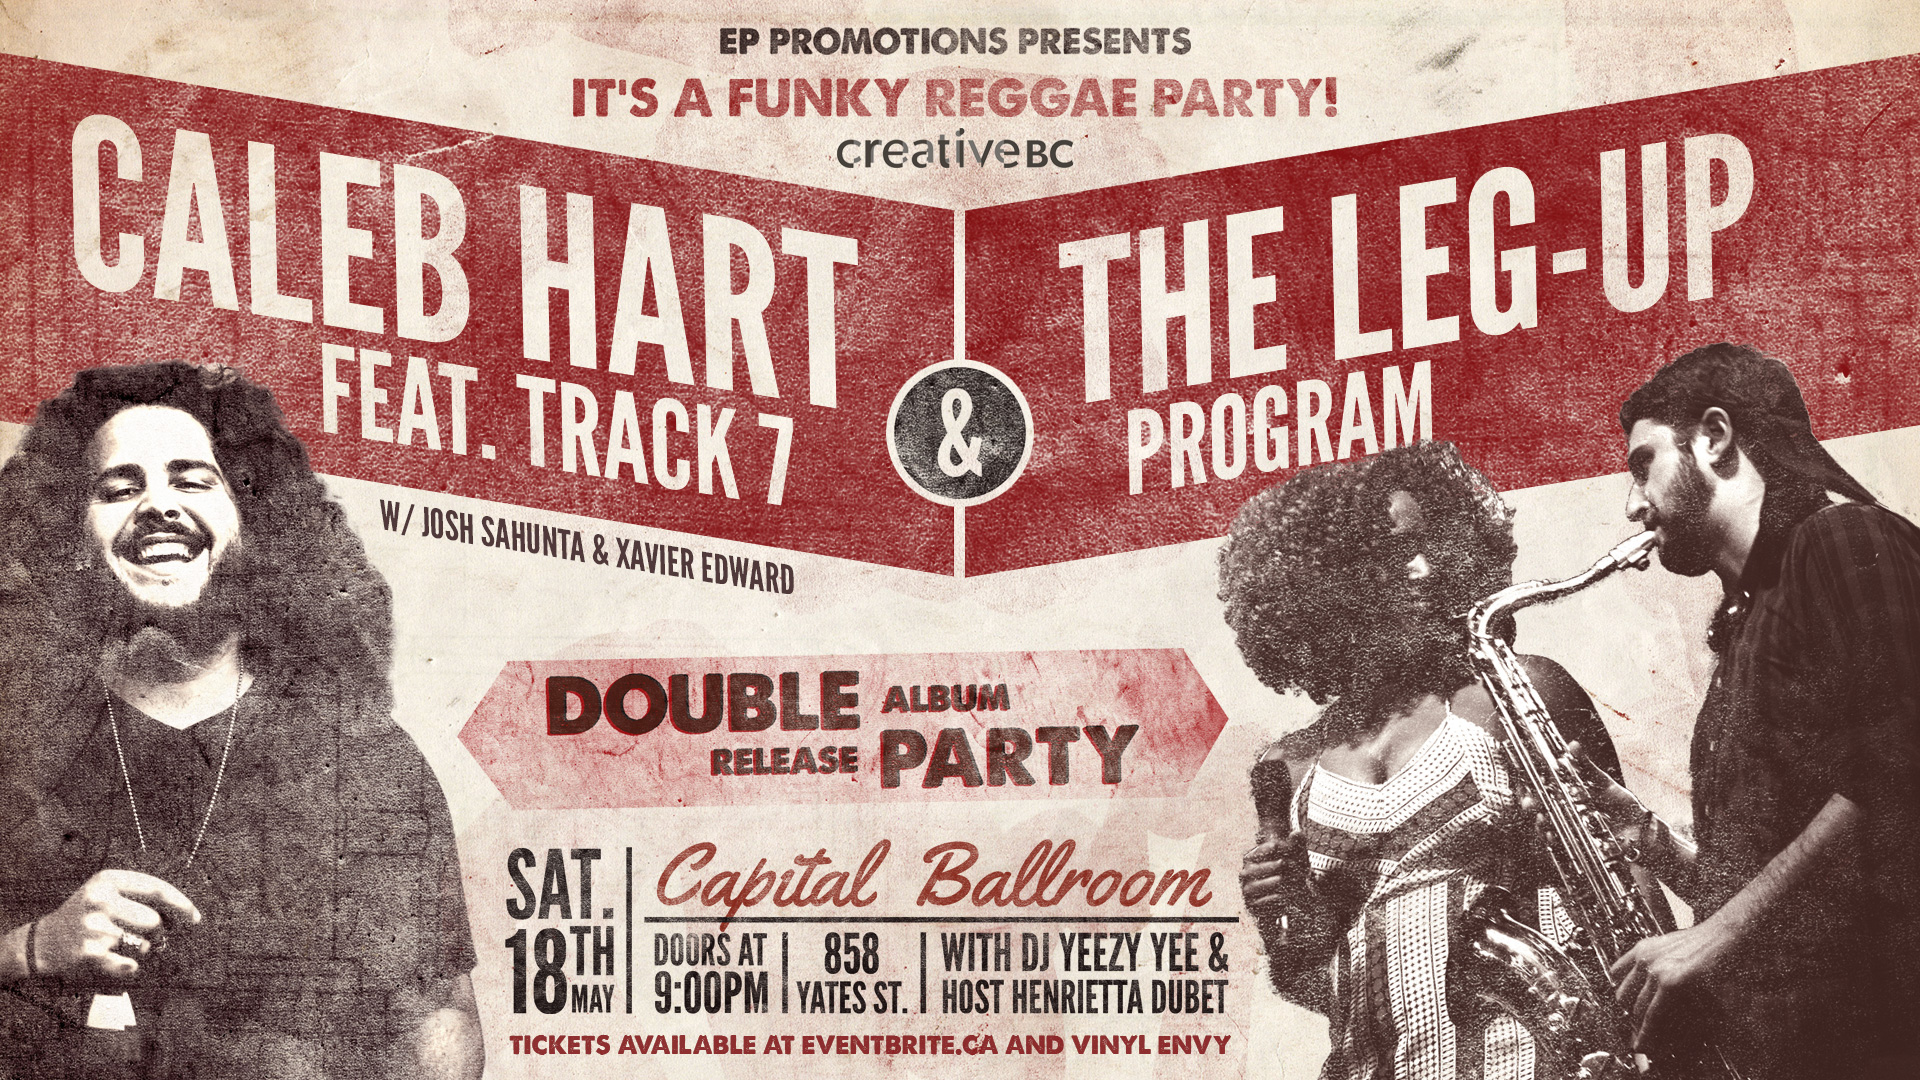 Caleb Hart Massive + The Leg-Up Program Double Album Release May 18 Capital Ballroom